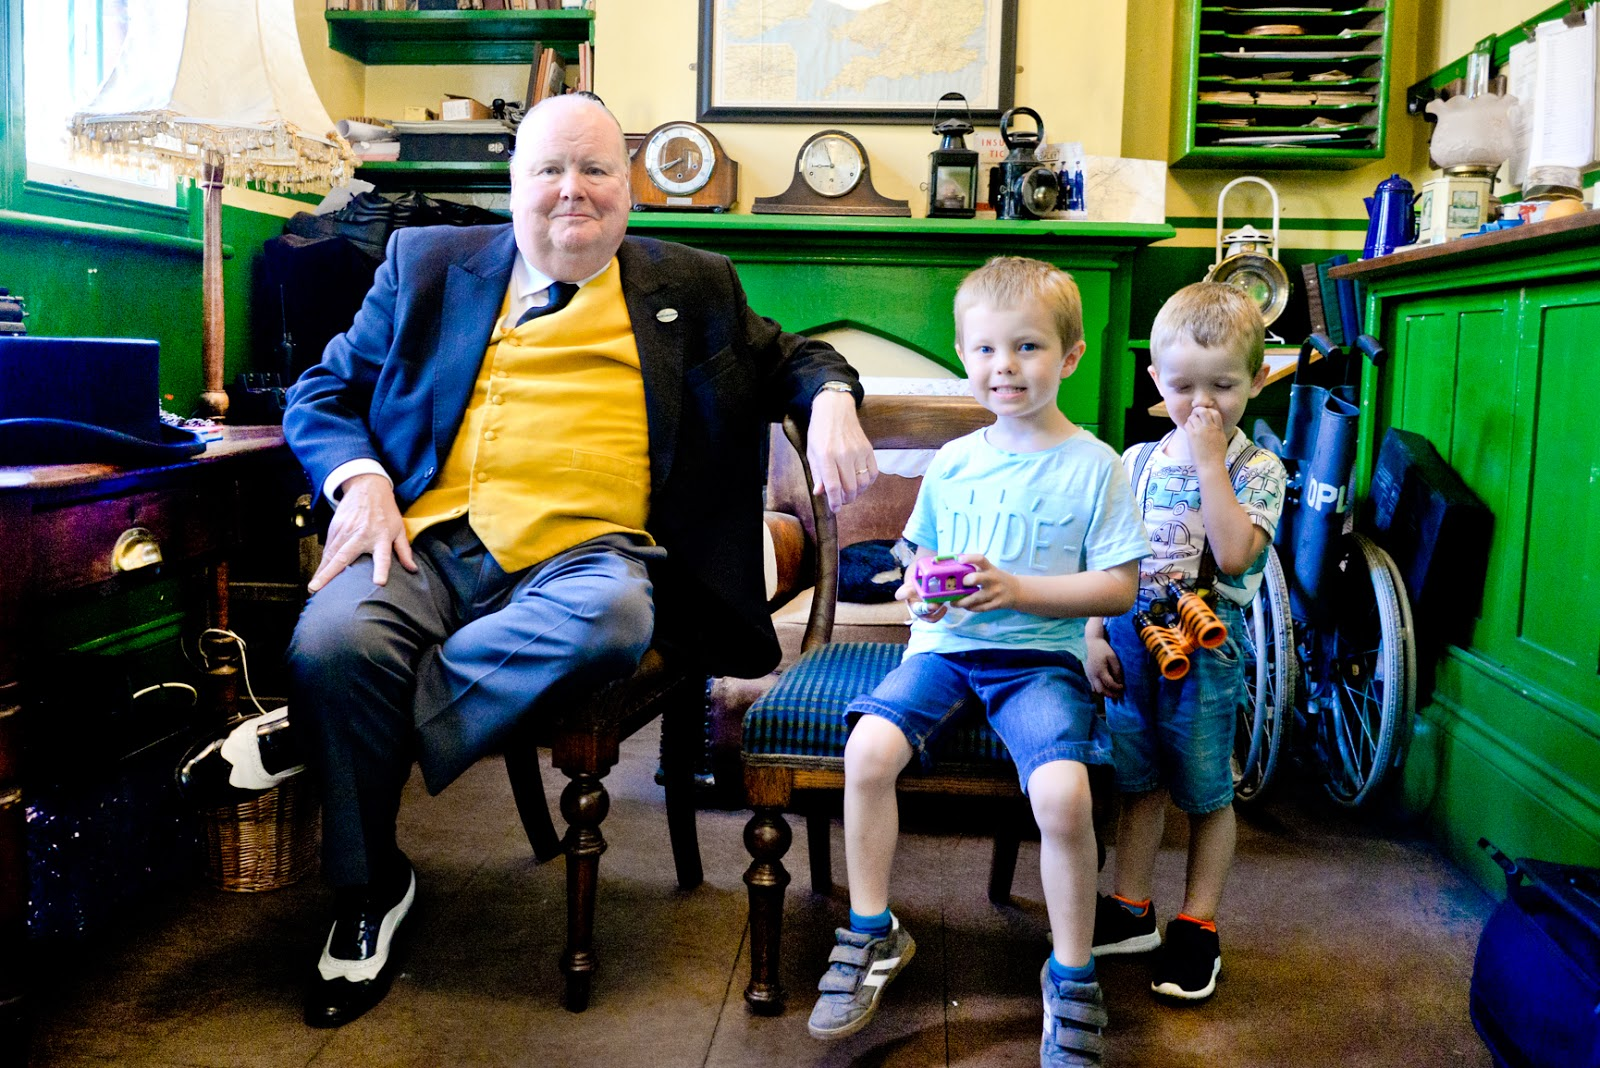 a day out with thomas, watercress line, the fat controller